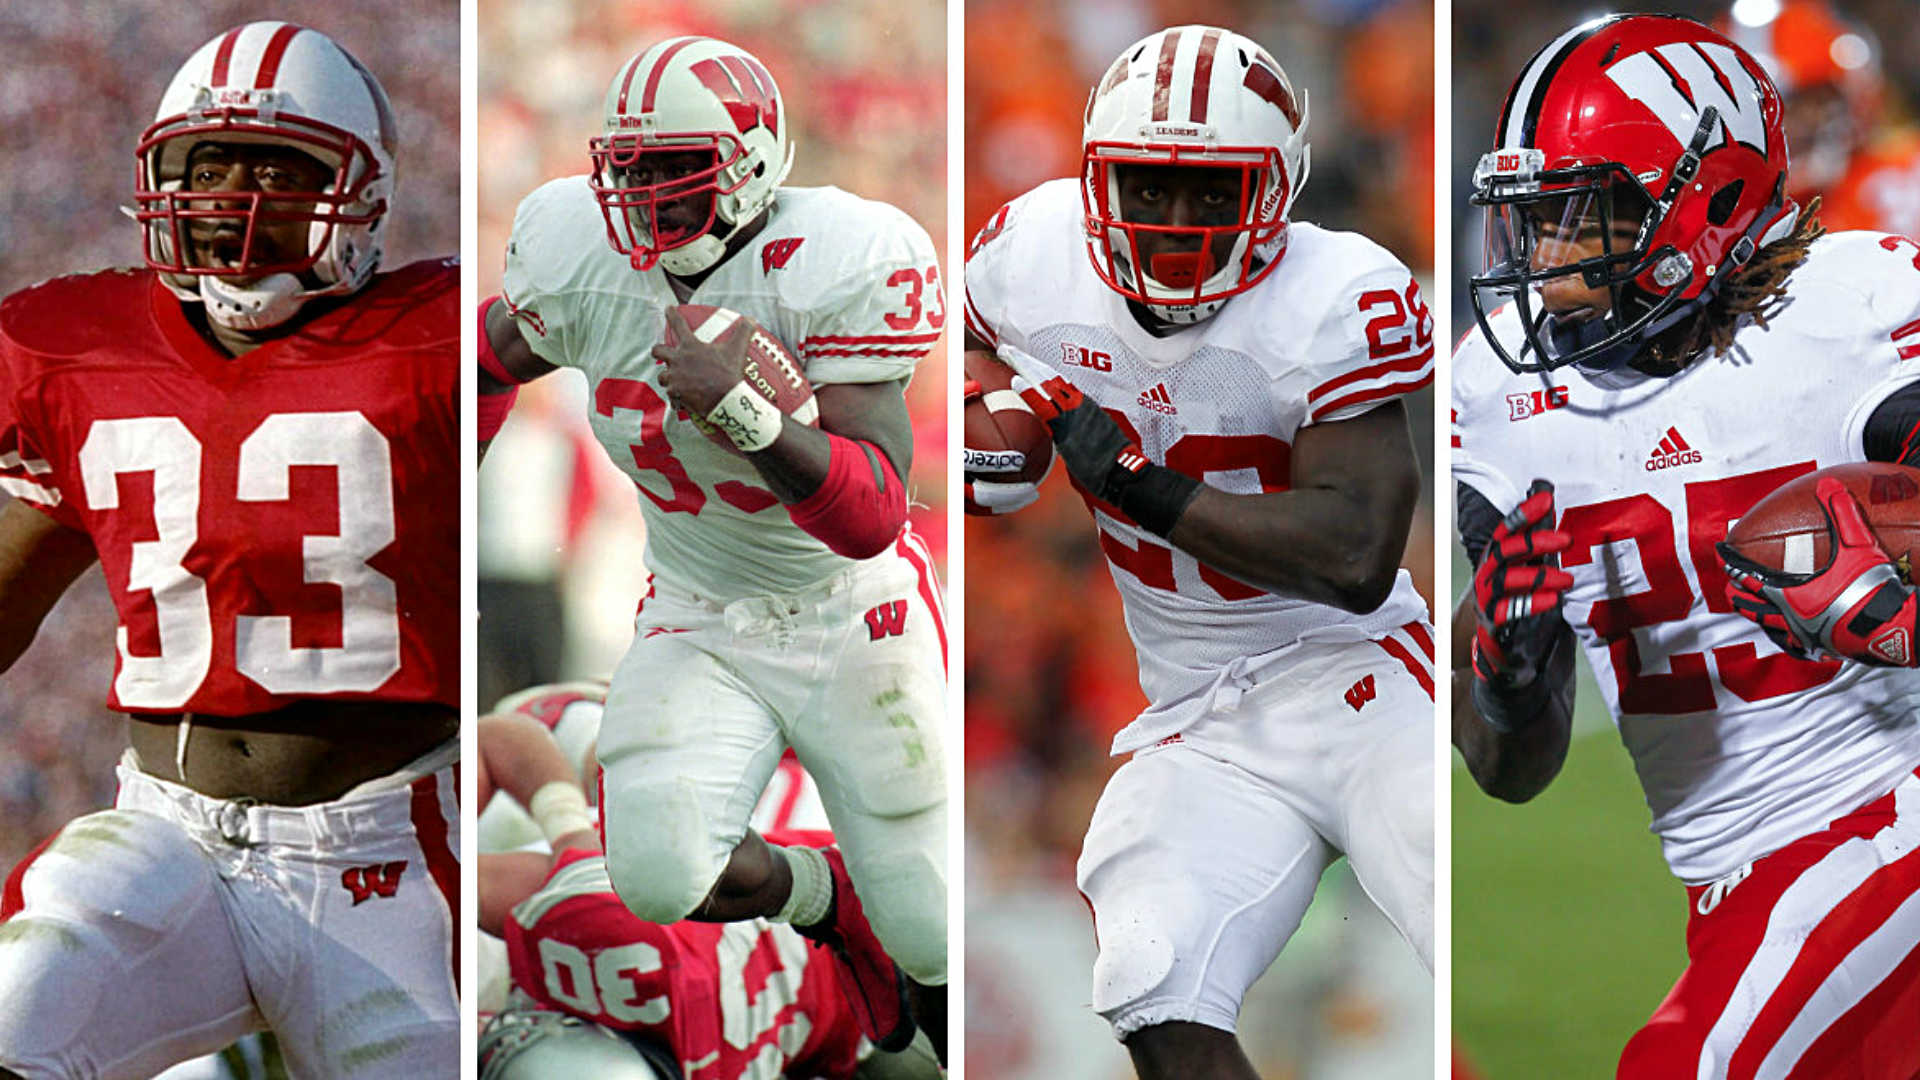 Wisconsin Badgers RB tradition: From Moss to Taylor | Sporting News